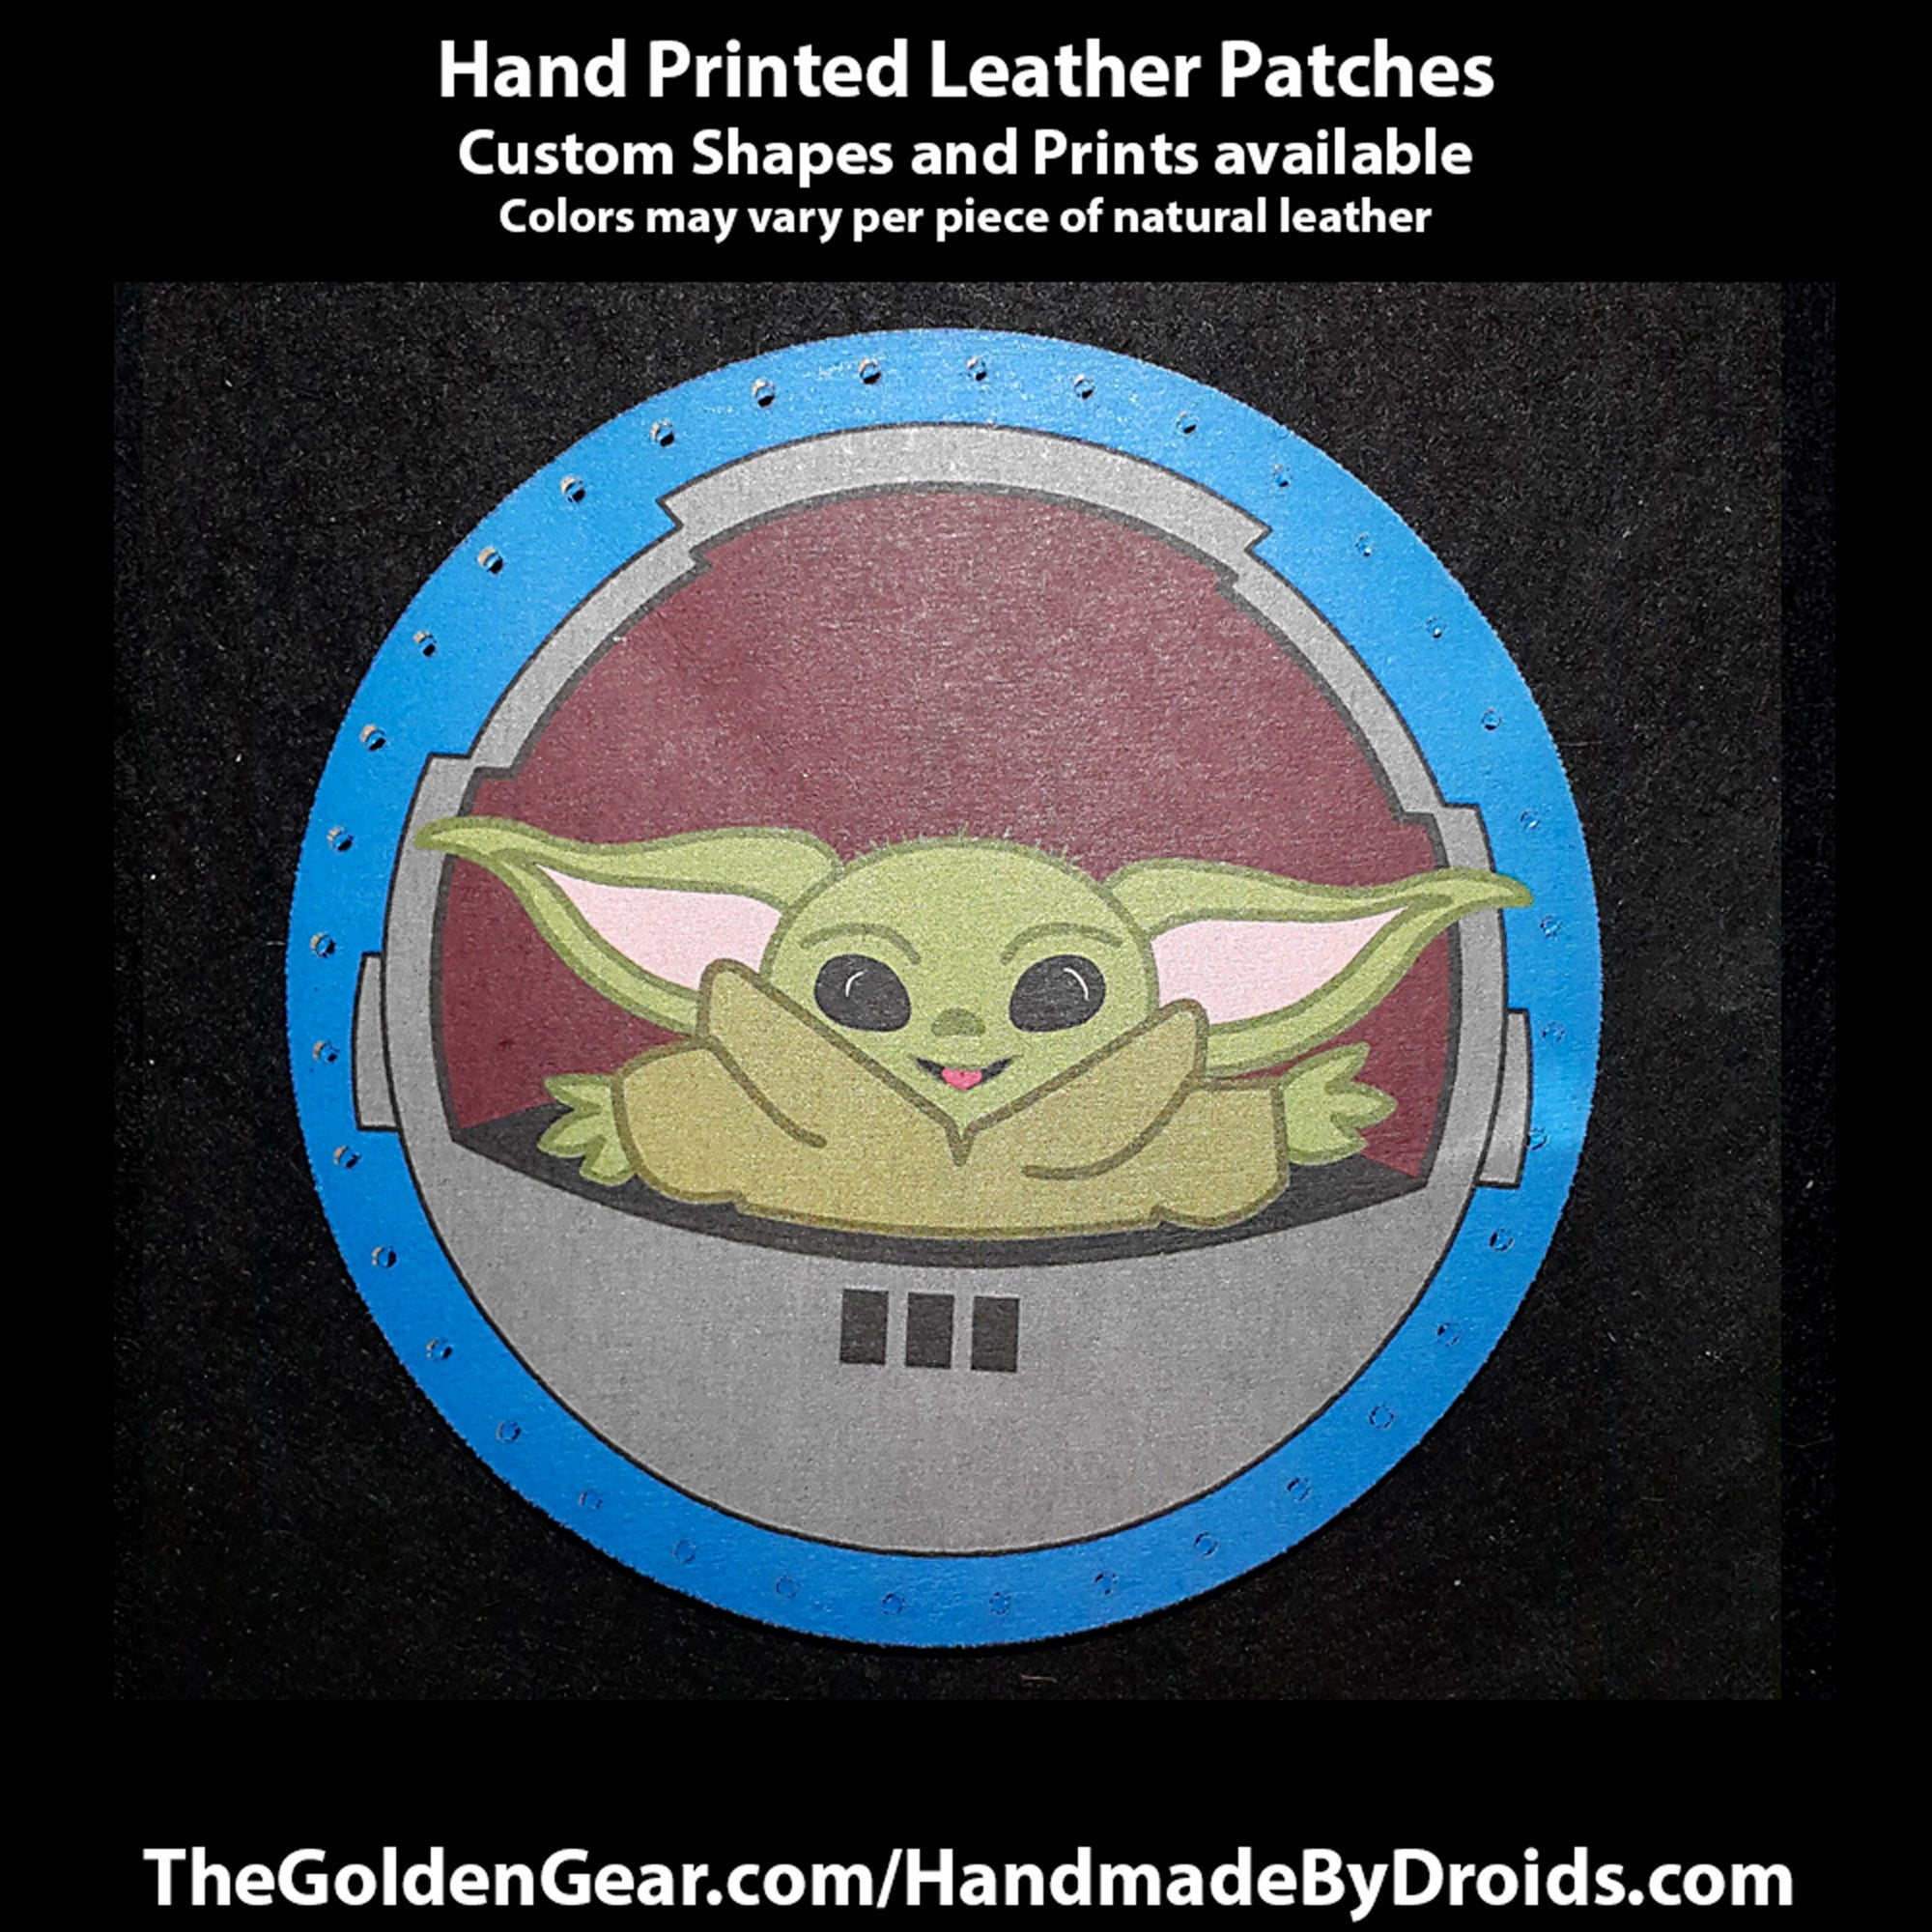 Grogu (Baby Yoda) 3.8 inch Leather Patch